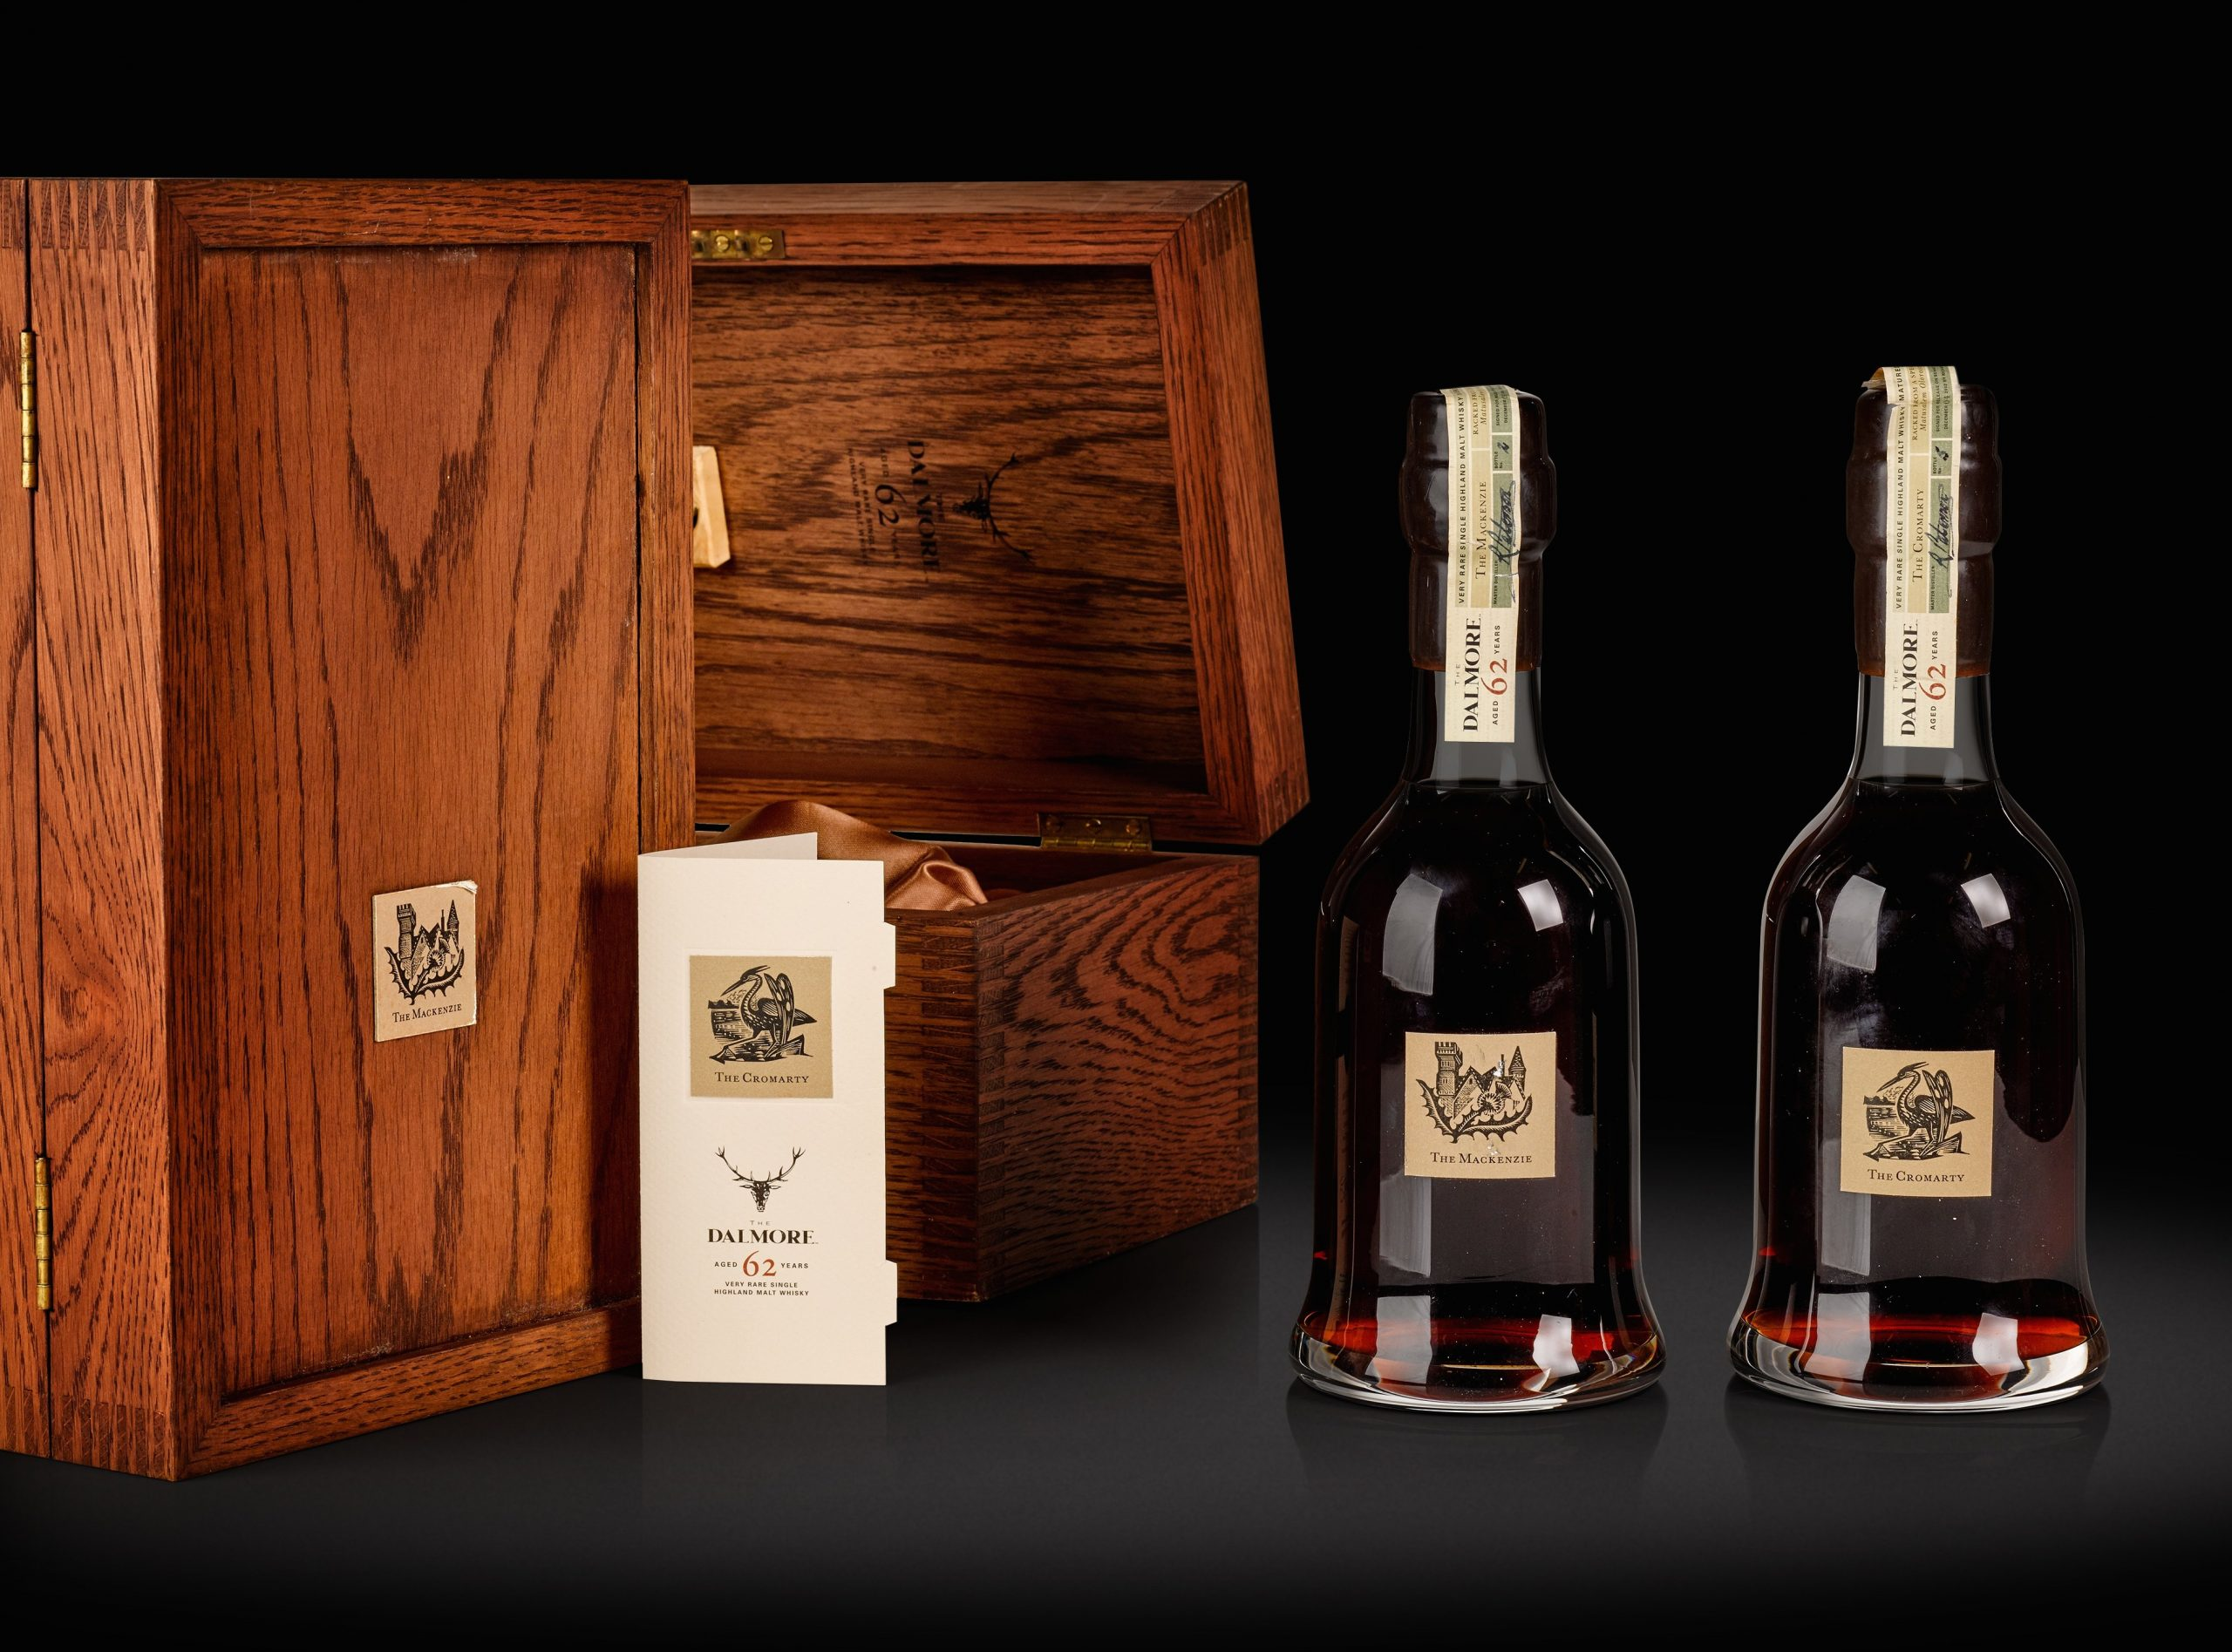 The Dalmore 62 Sets New Record In Sotheby's Auction photo